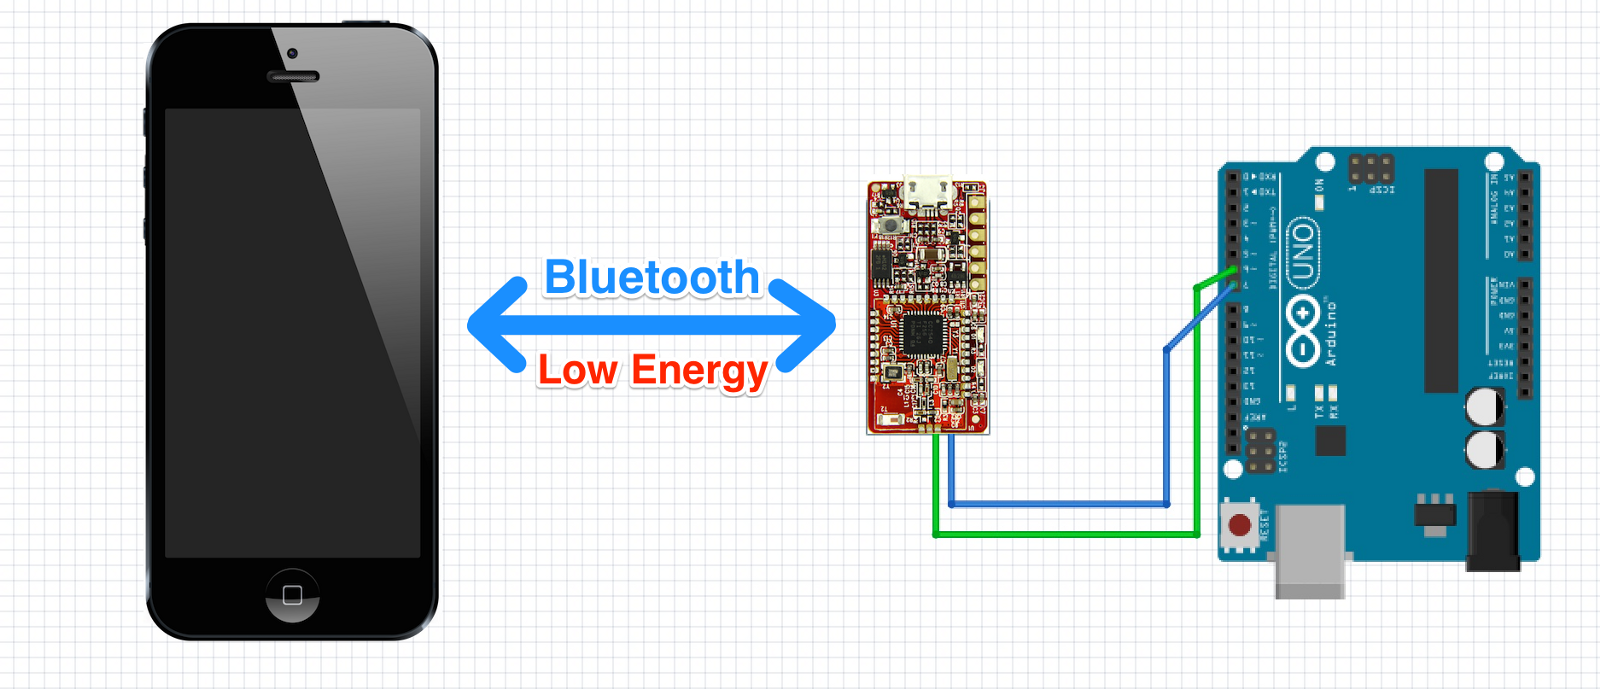 Bluetooth Low Energy Essentials For Creating Software With Device Circuit Diagram Of To Smartphone Connectivity